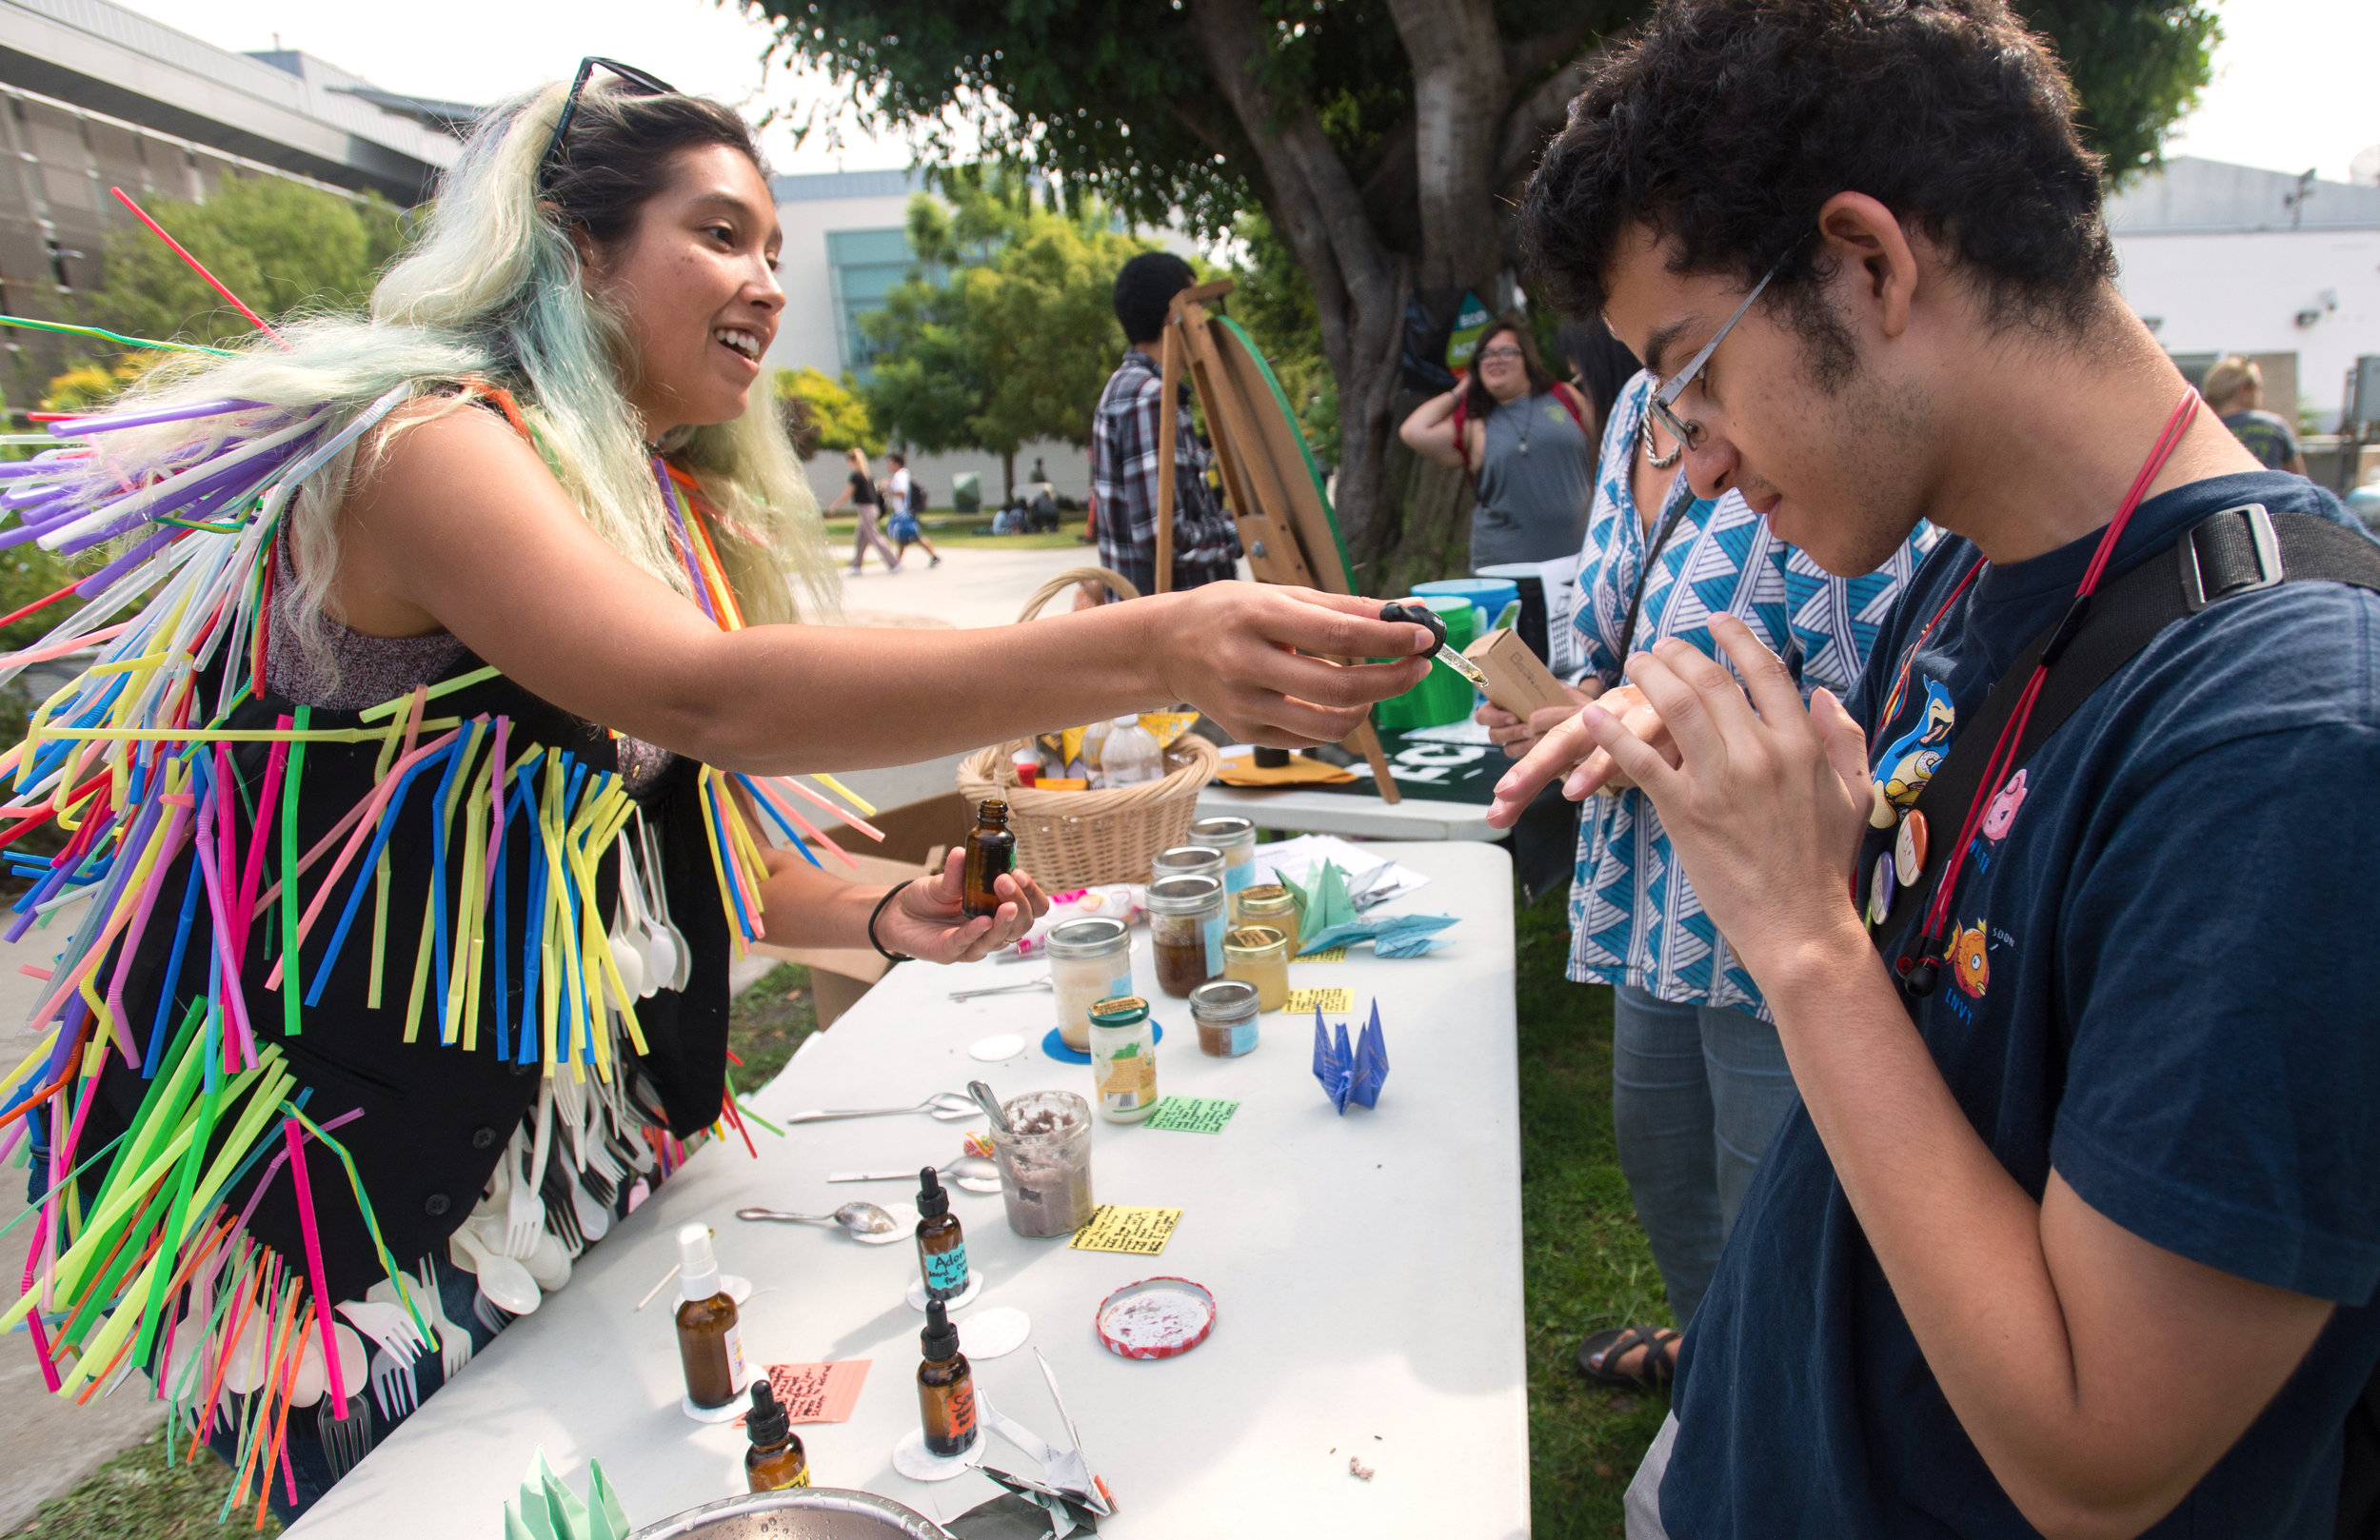 Carla Claure, 28, (L) Vice President of Eco Action club demonstrates oil samples for men to Anthony Carrillo, 20, (R) a Psychology major during Sustainability Week at Santa Monica College, in Santa Monica, California on October 17, 2017. (Josue Martinez)